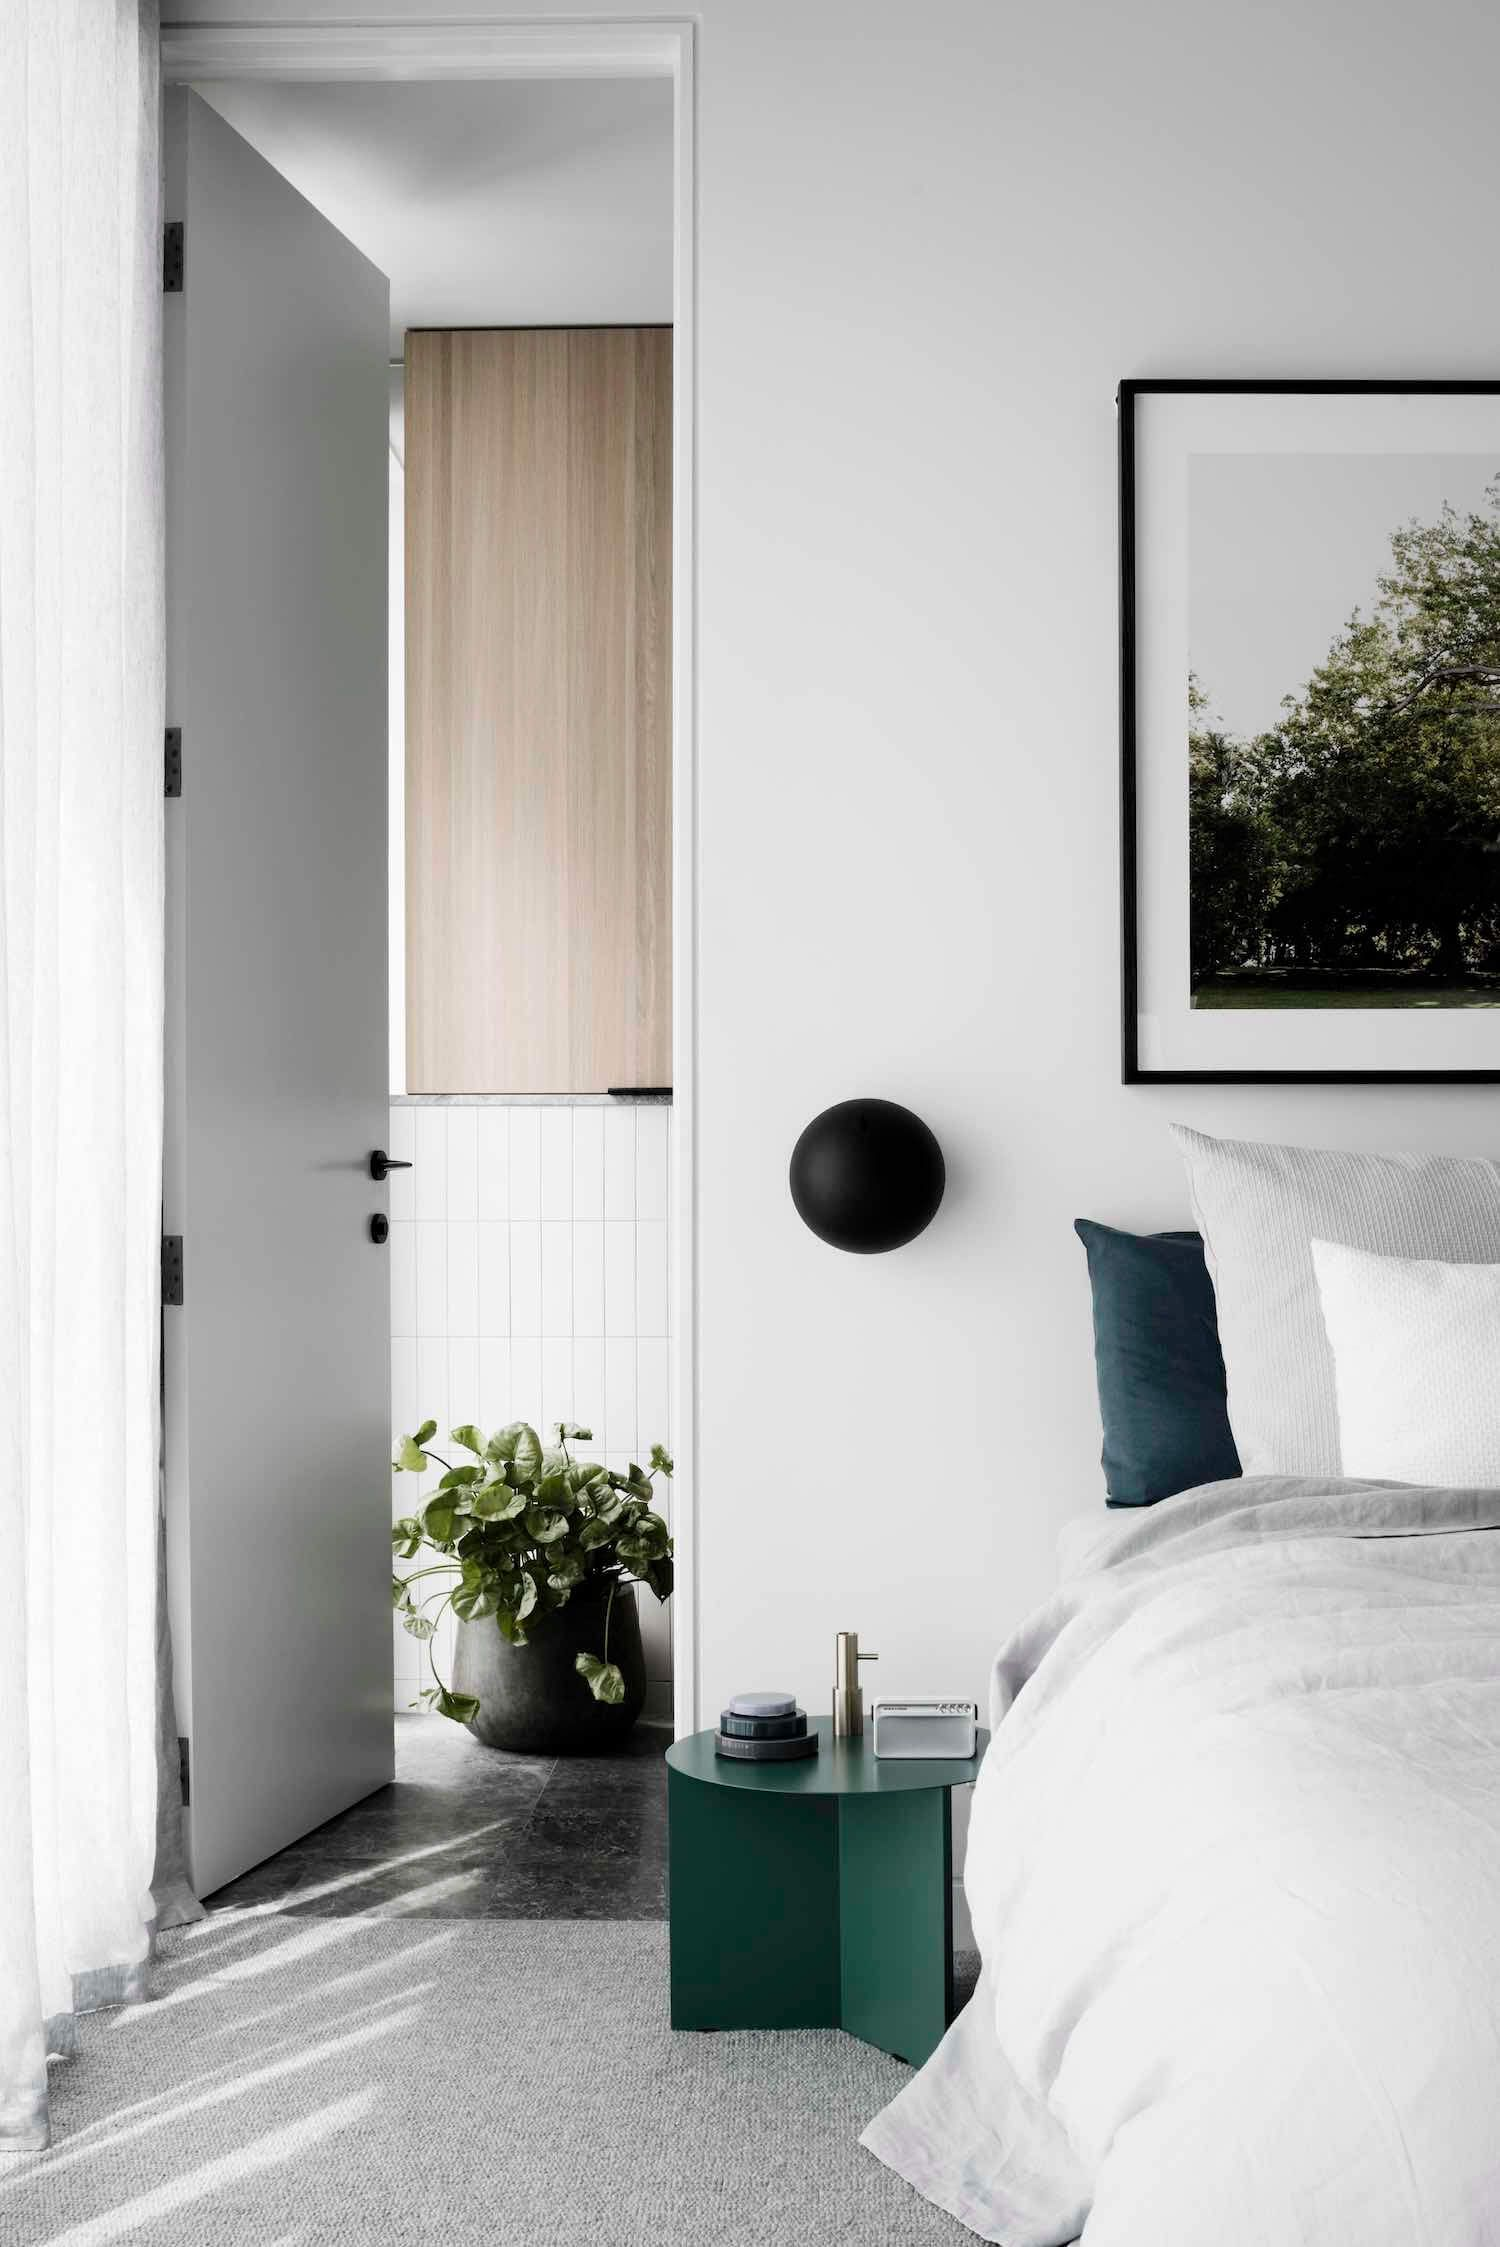 Simple modern master bedroom ideas  Pin by Marine Saudreau on ATMOSPHERE  Pinterest  Architecture